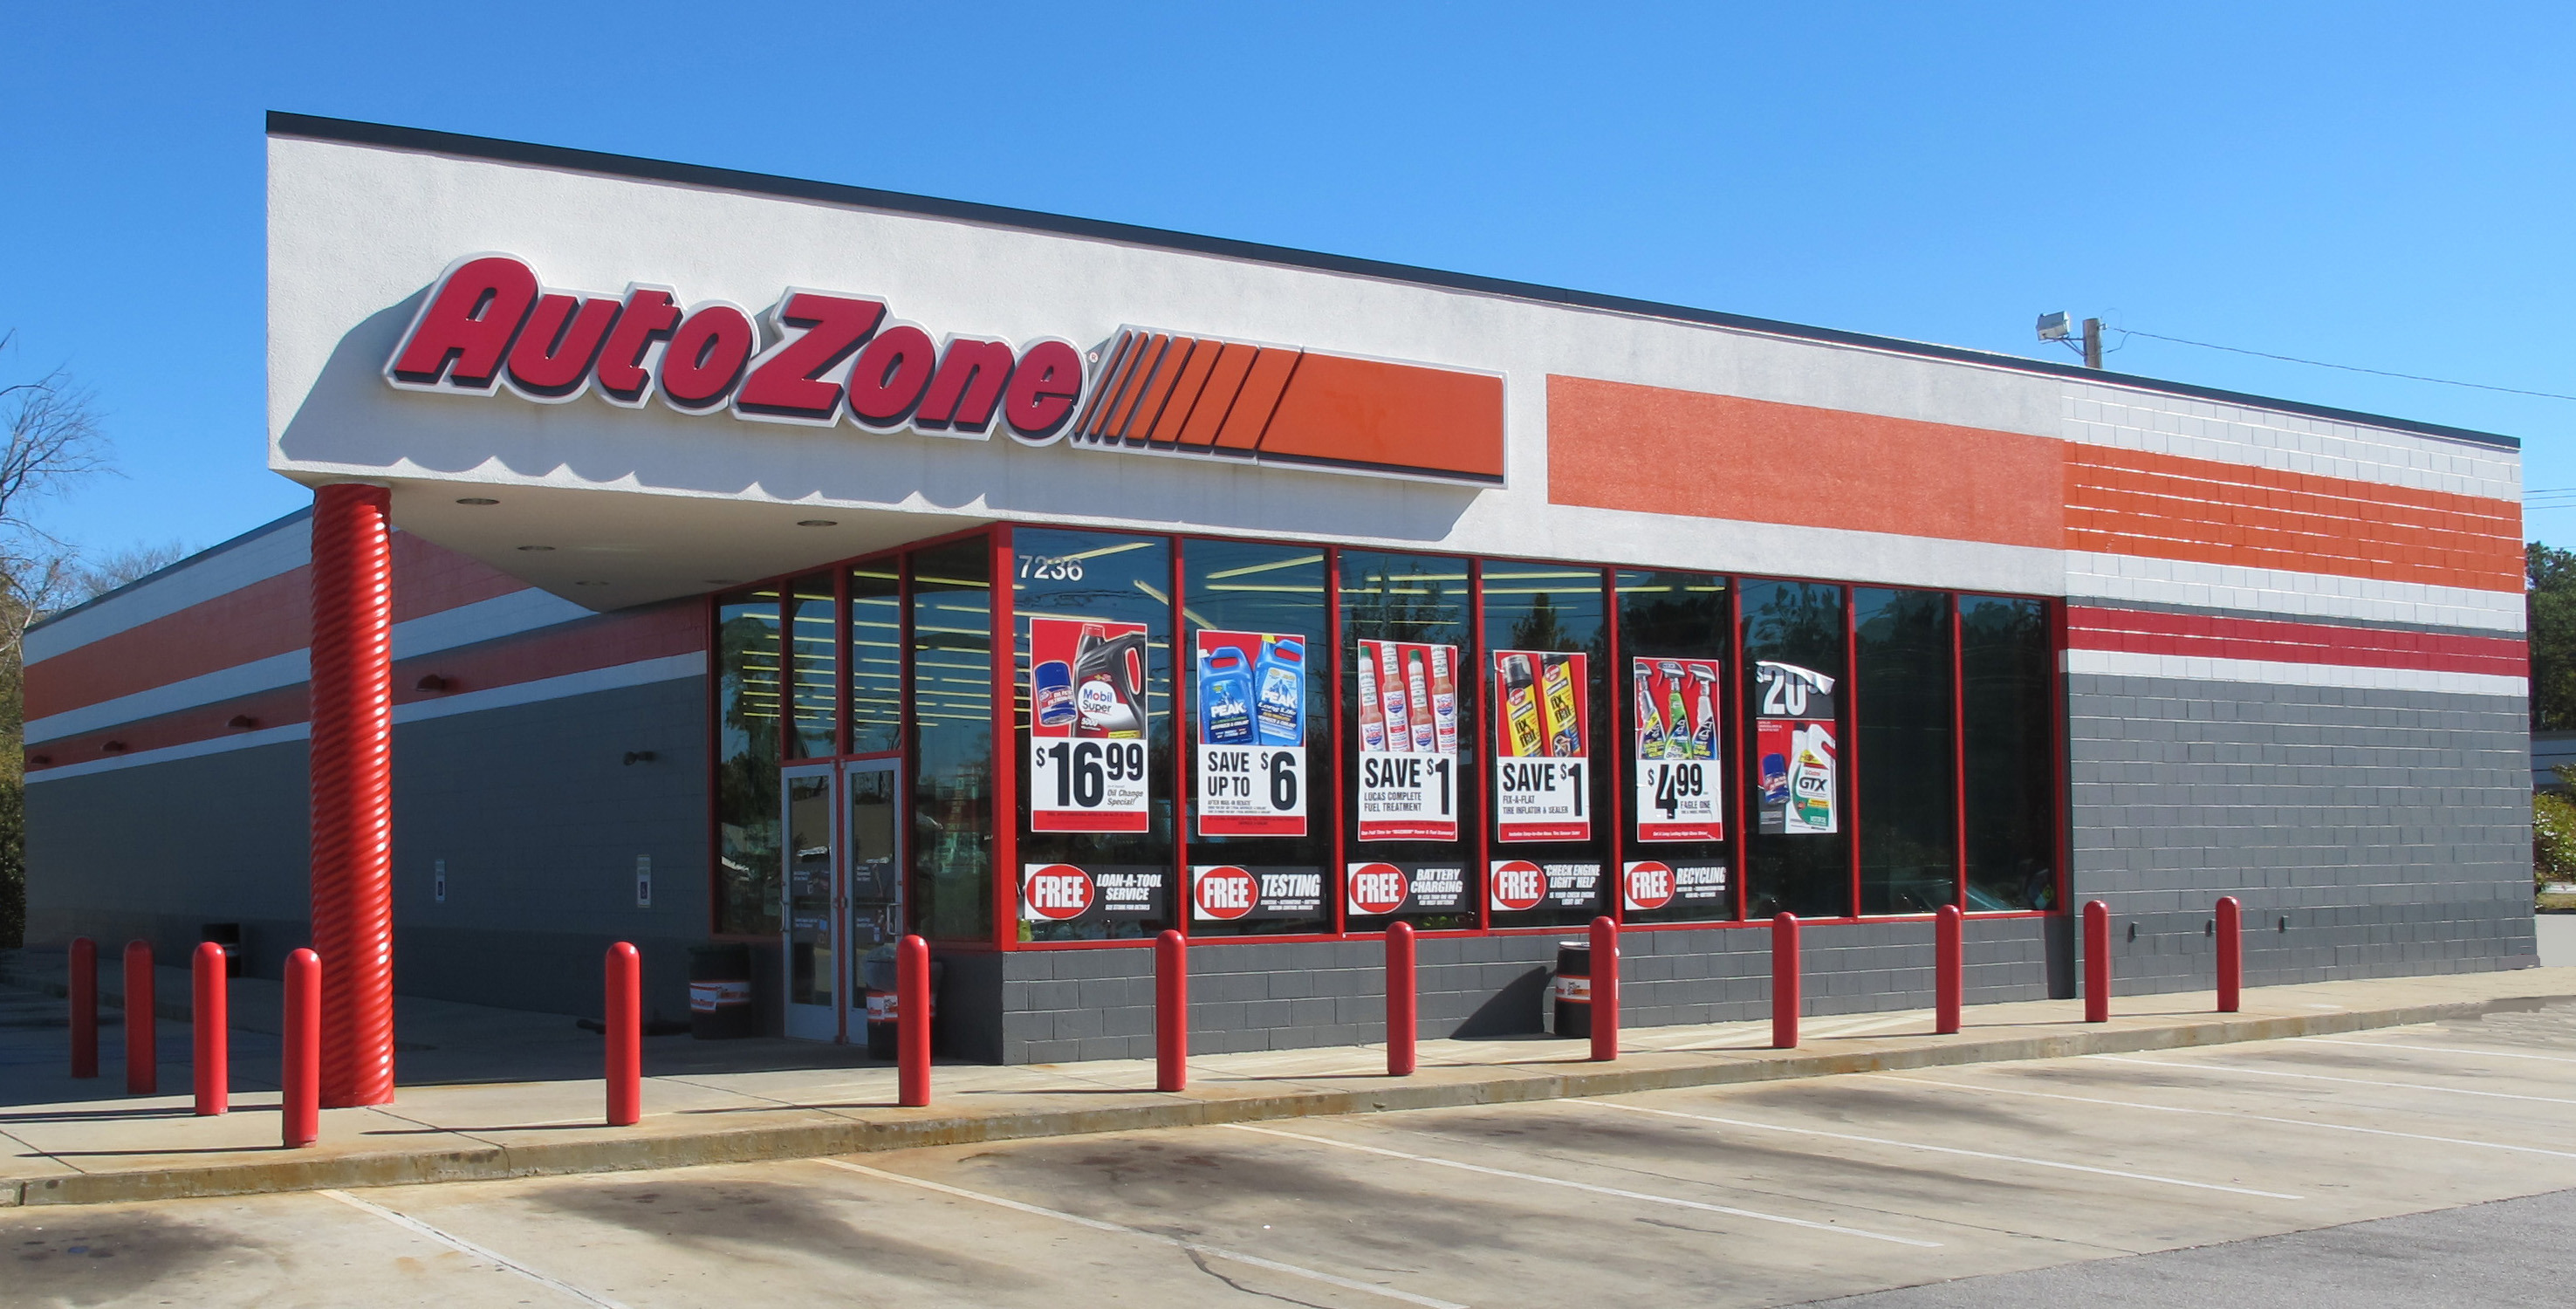 Brand New Nnn Autozone In Clearwater Fl Sells For 1550000 Newswire Auto Zone Fuel Filters December 28 2015 Chad Minor With Solid Investments A Nationally Recognized Boutique Real Estate Firm Specializing